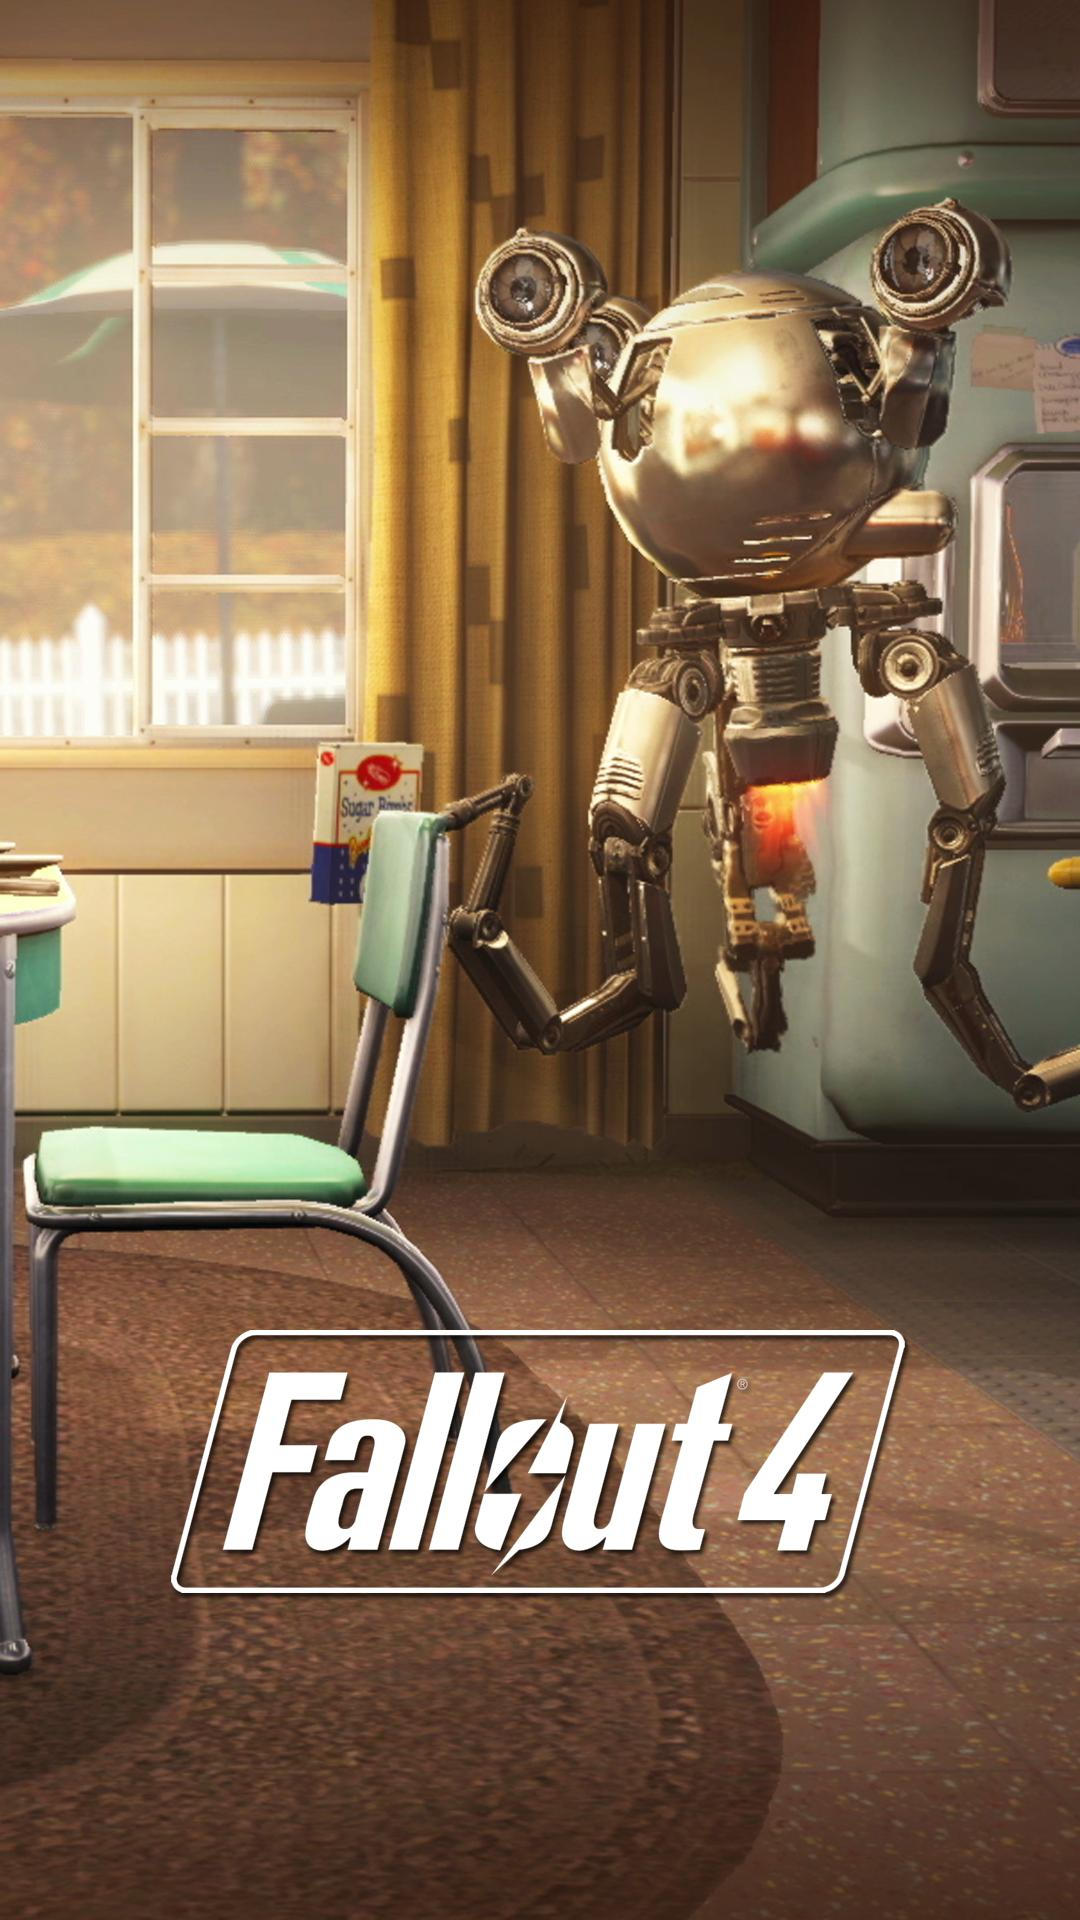 Fallout 4 Wallpaper Hd 18 Fallout 4 Wallpapers For Mobile Fallout 4 Fo4 Mods